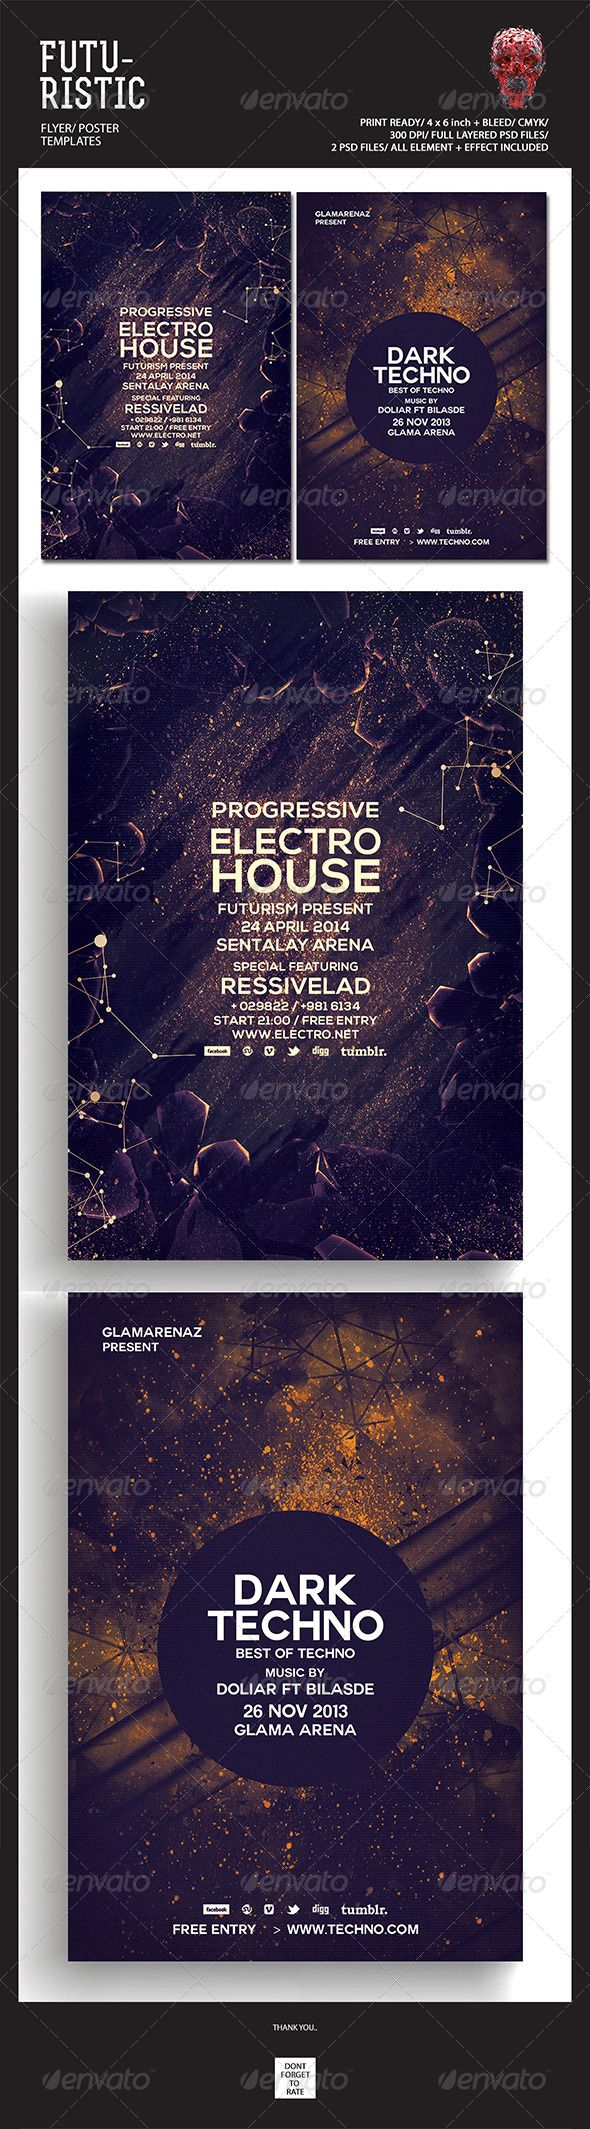 """Futuristic Flyer Templates #GraphicRiver Featured Flyers Flyer Artwork """"Dark Techno"""" This flyer was designed to promote an Electro / Dubstep / Dance / Drum and Bass / Techno / House music event, such as a gig, concert, festival, dj set, party or weekly event in a music club and other kind of special evenings. This flyer can also be used for a new album promotion or other advertising purposes. Detail : 2 Psd files 4×6 with 0.25 inch bleed area 300 dpi/CMYK Organized layers Print ready Font…"""